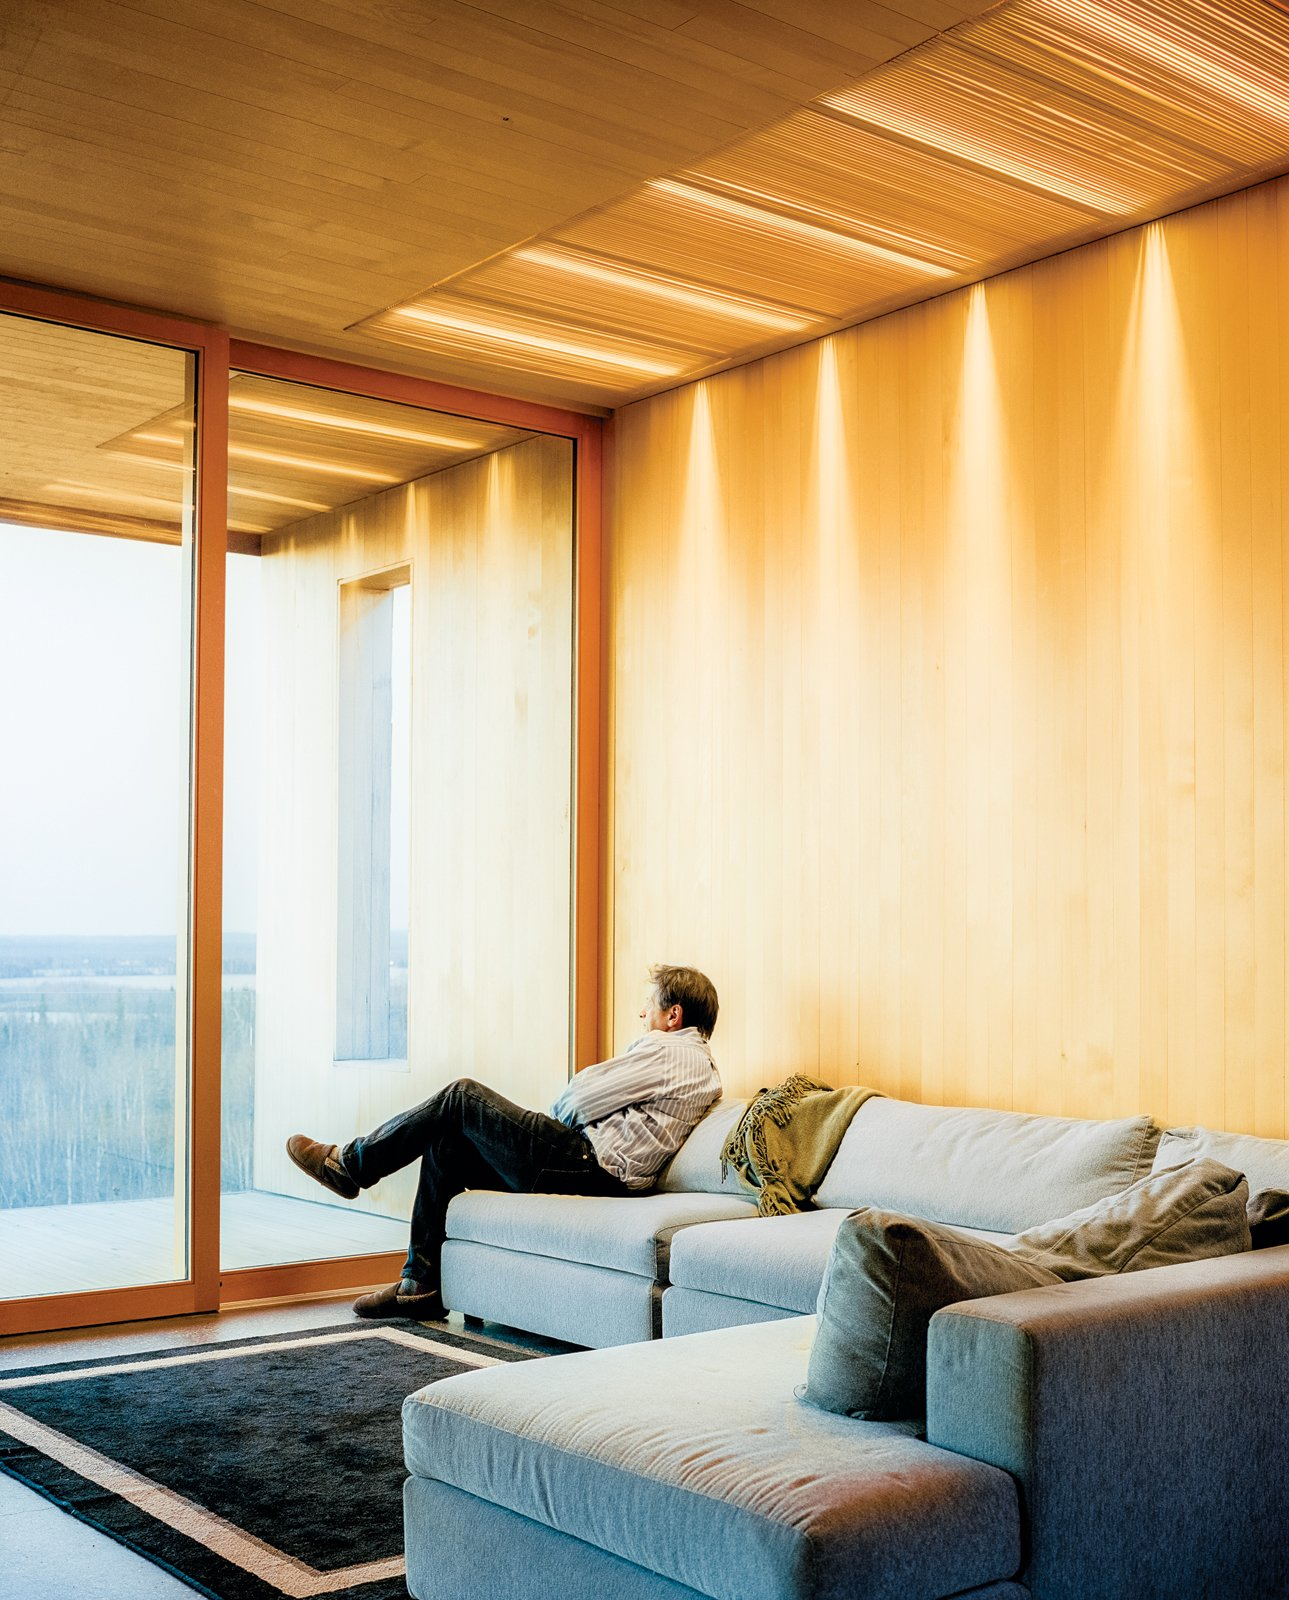 The living room features a sofa by Dellarobbia. Tagged: Living Room and Sofa. This Modern Cabin Is the Ideal HQ For a Family in Alaska - Photo 6 of 20